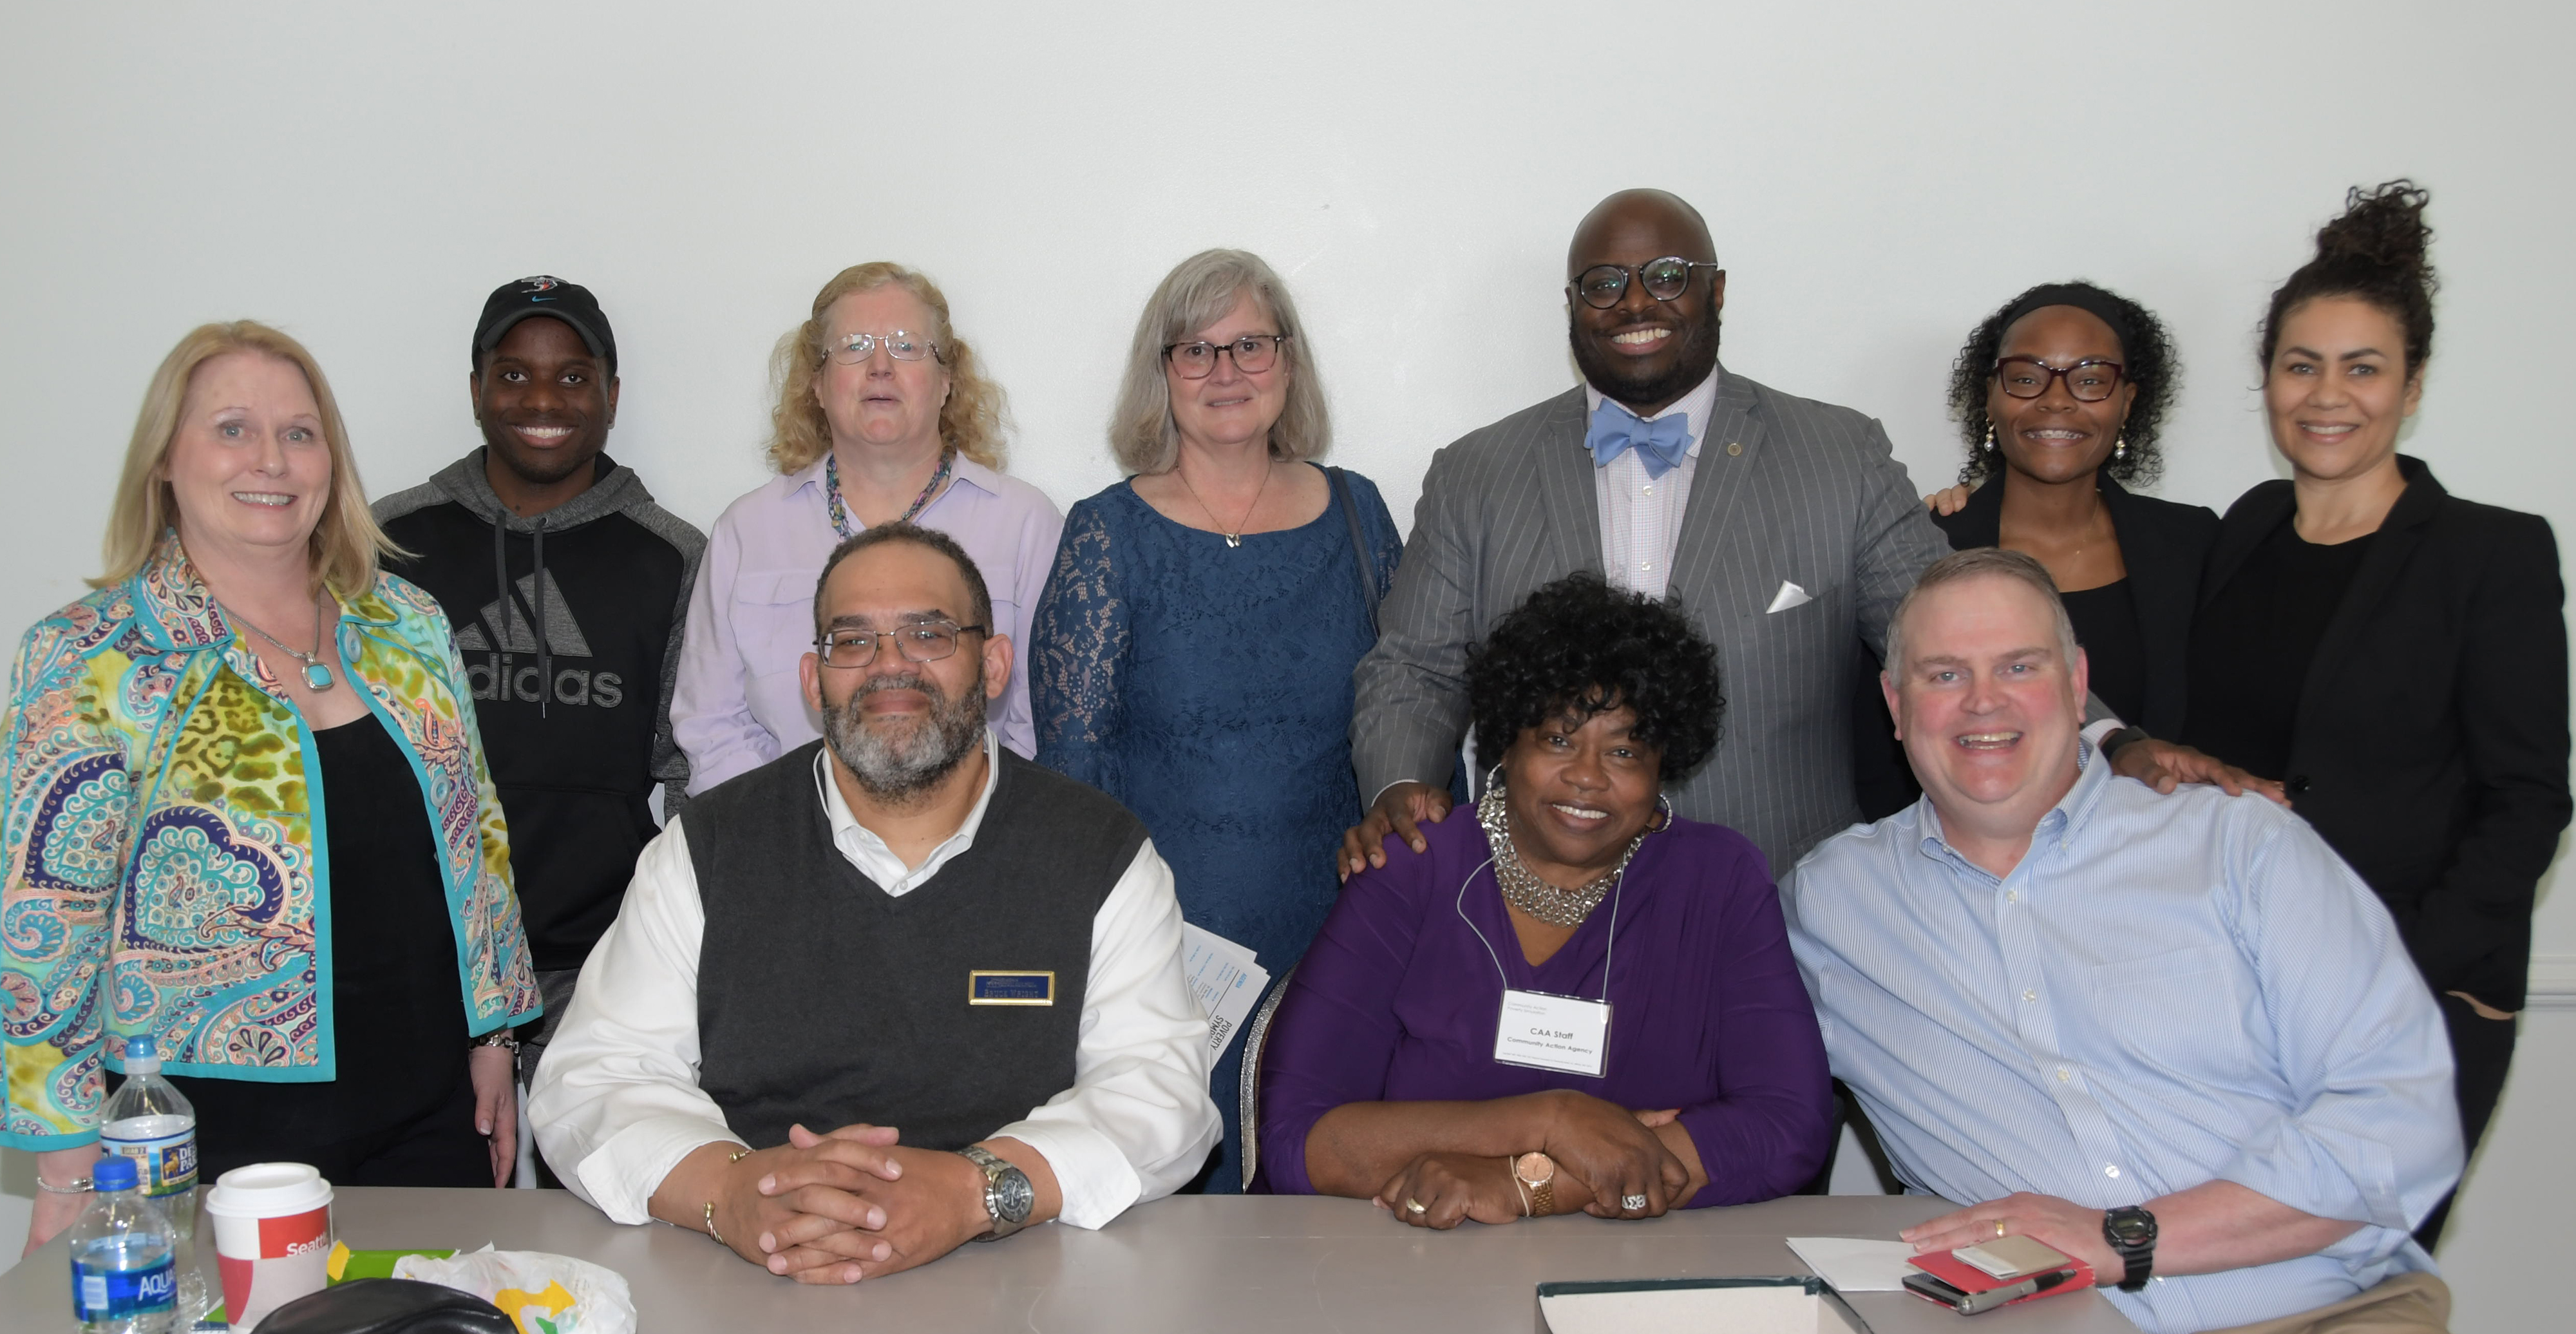 Poverty Symposium leaders: (seated l-r) Bruce Wright and Bernice Edwards of First State Community Action, state Sen. Colin Bonini; (standing l-r) Cynthia Pritchard of Philanthropy Delaware, University student Rex Haye, University Social Work Dept. chair Dr. Kelly Ward, University Psychology Dept. chair Dr. Dorothy Dillard, Provost Tony Allen, keynote speaker Lillian Singh and Kat Goughnour, both of Prosperity Now.